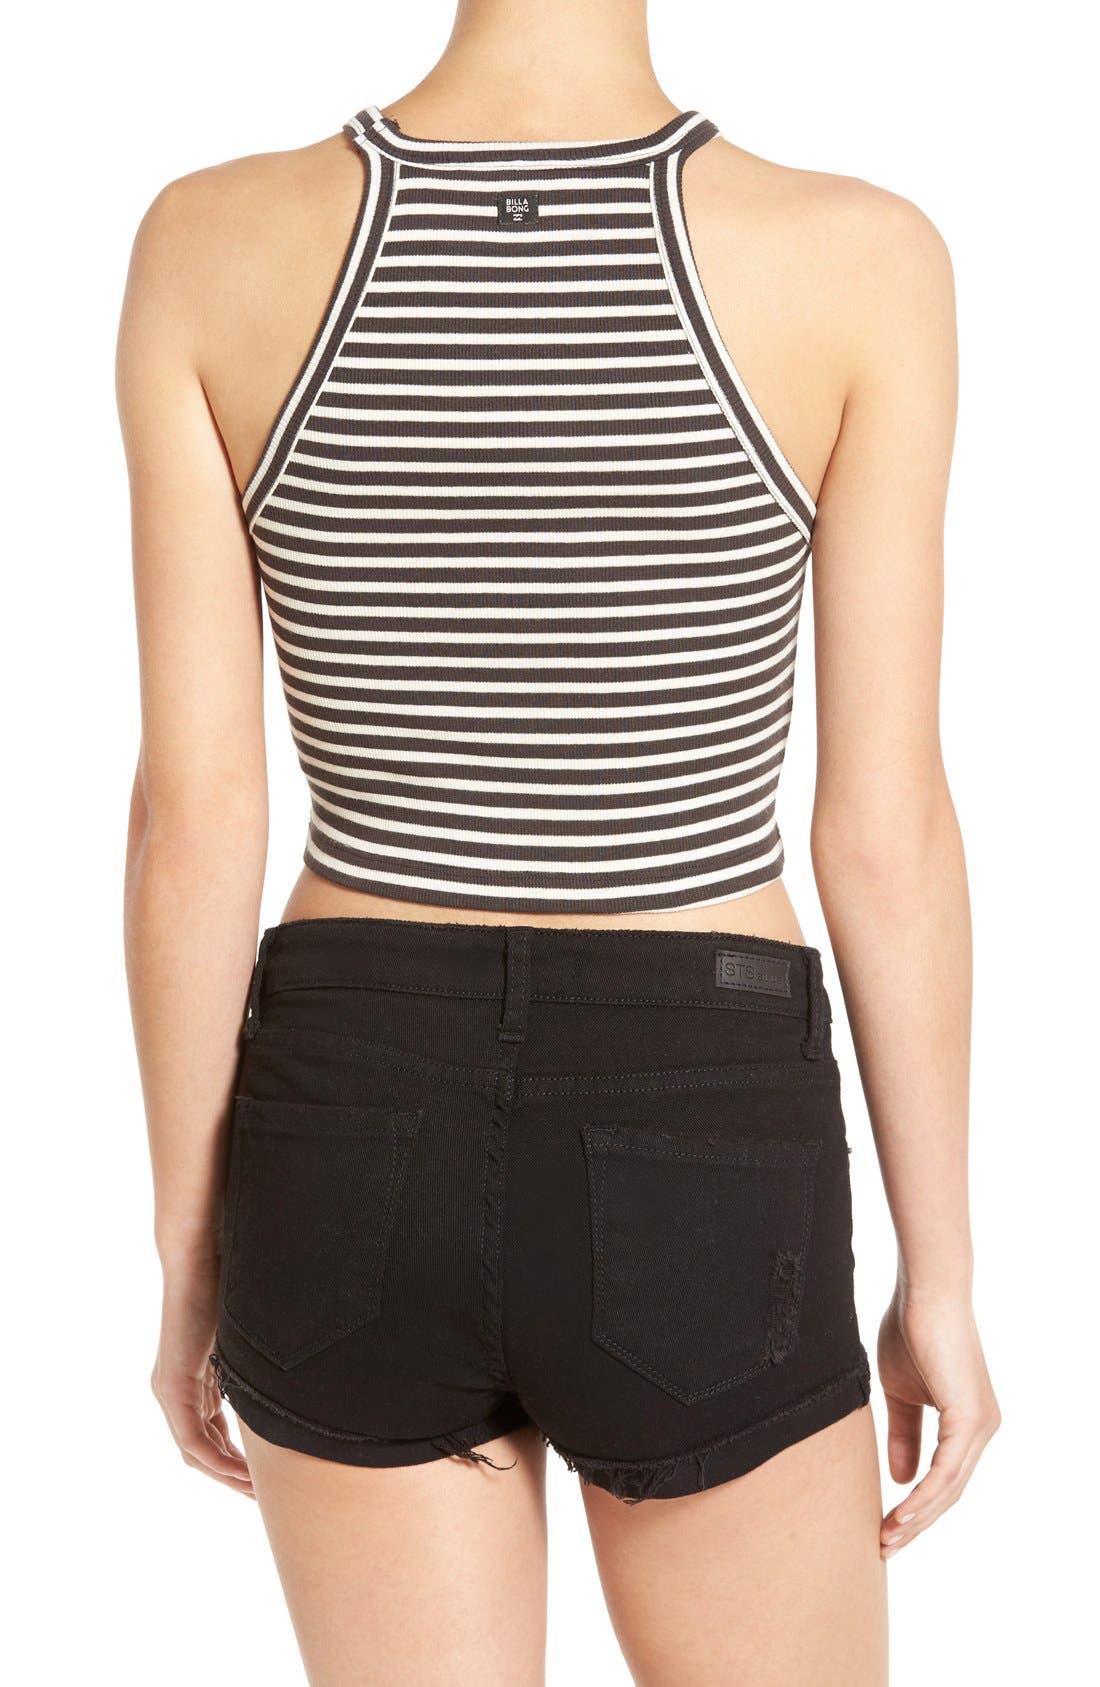 Alternate Image 2  - Billabong 'For Real' Stripe Crop Top